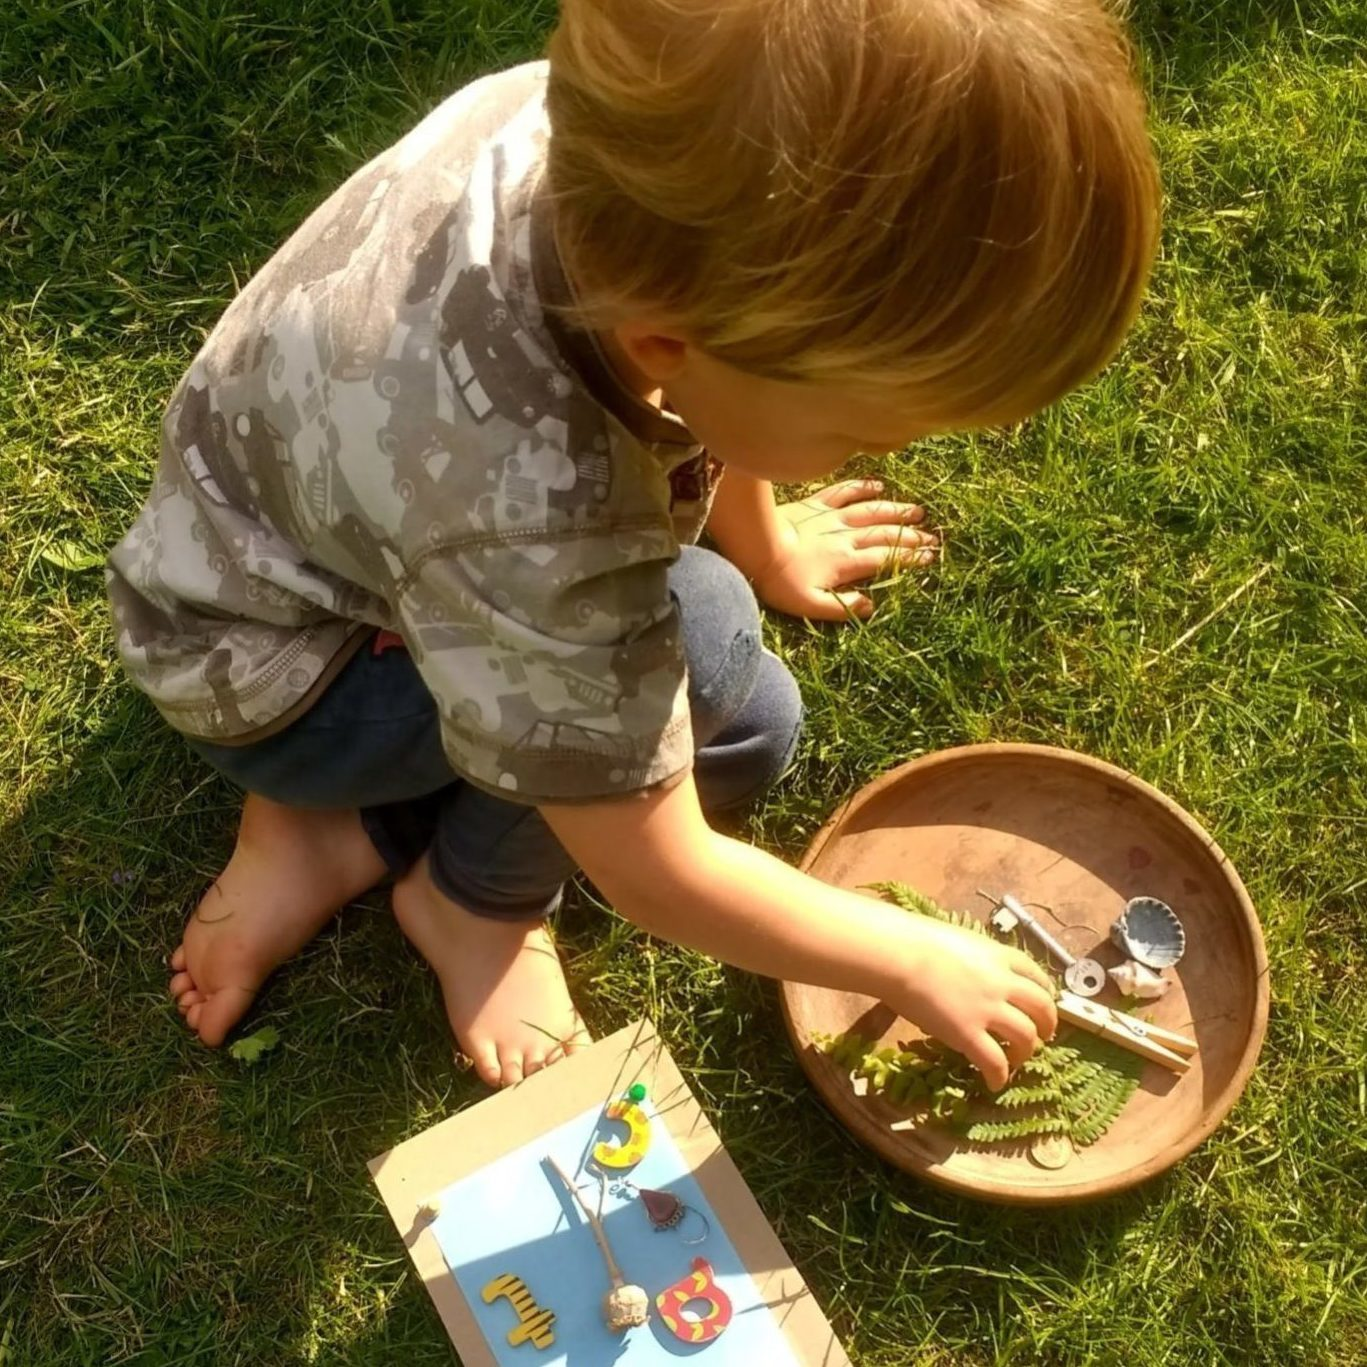 small child kneeling on grass with their hand in a bowl of ferns and shells and other natural objects